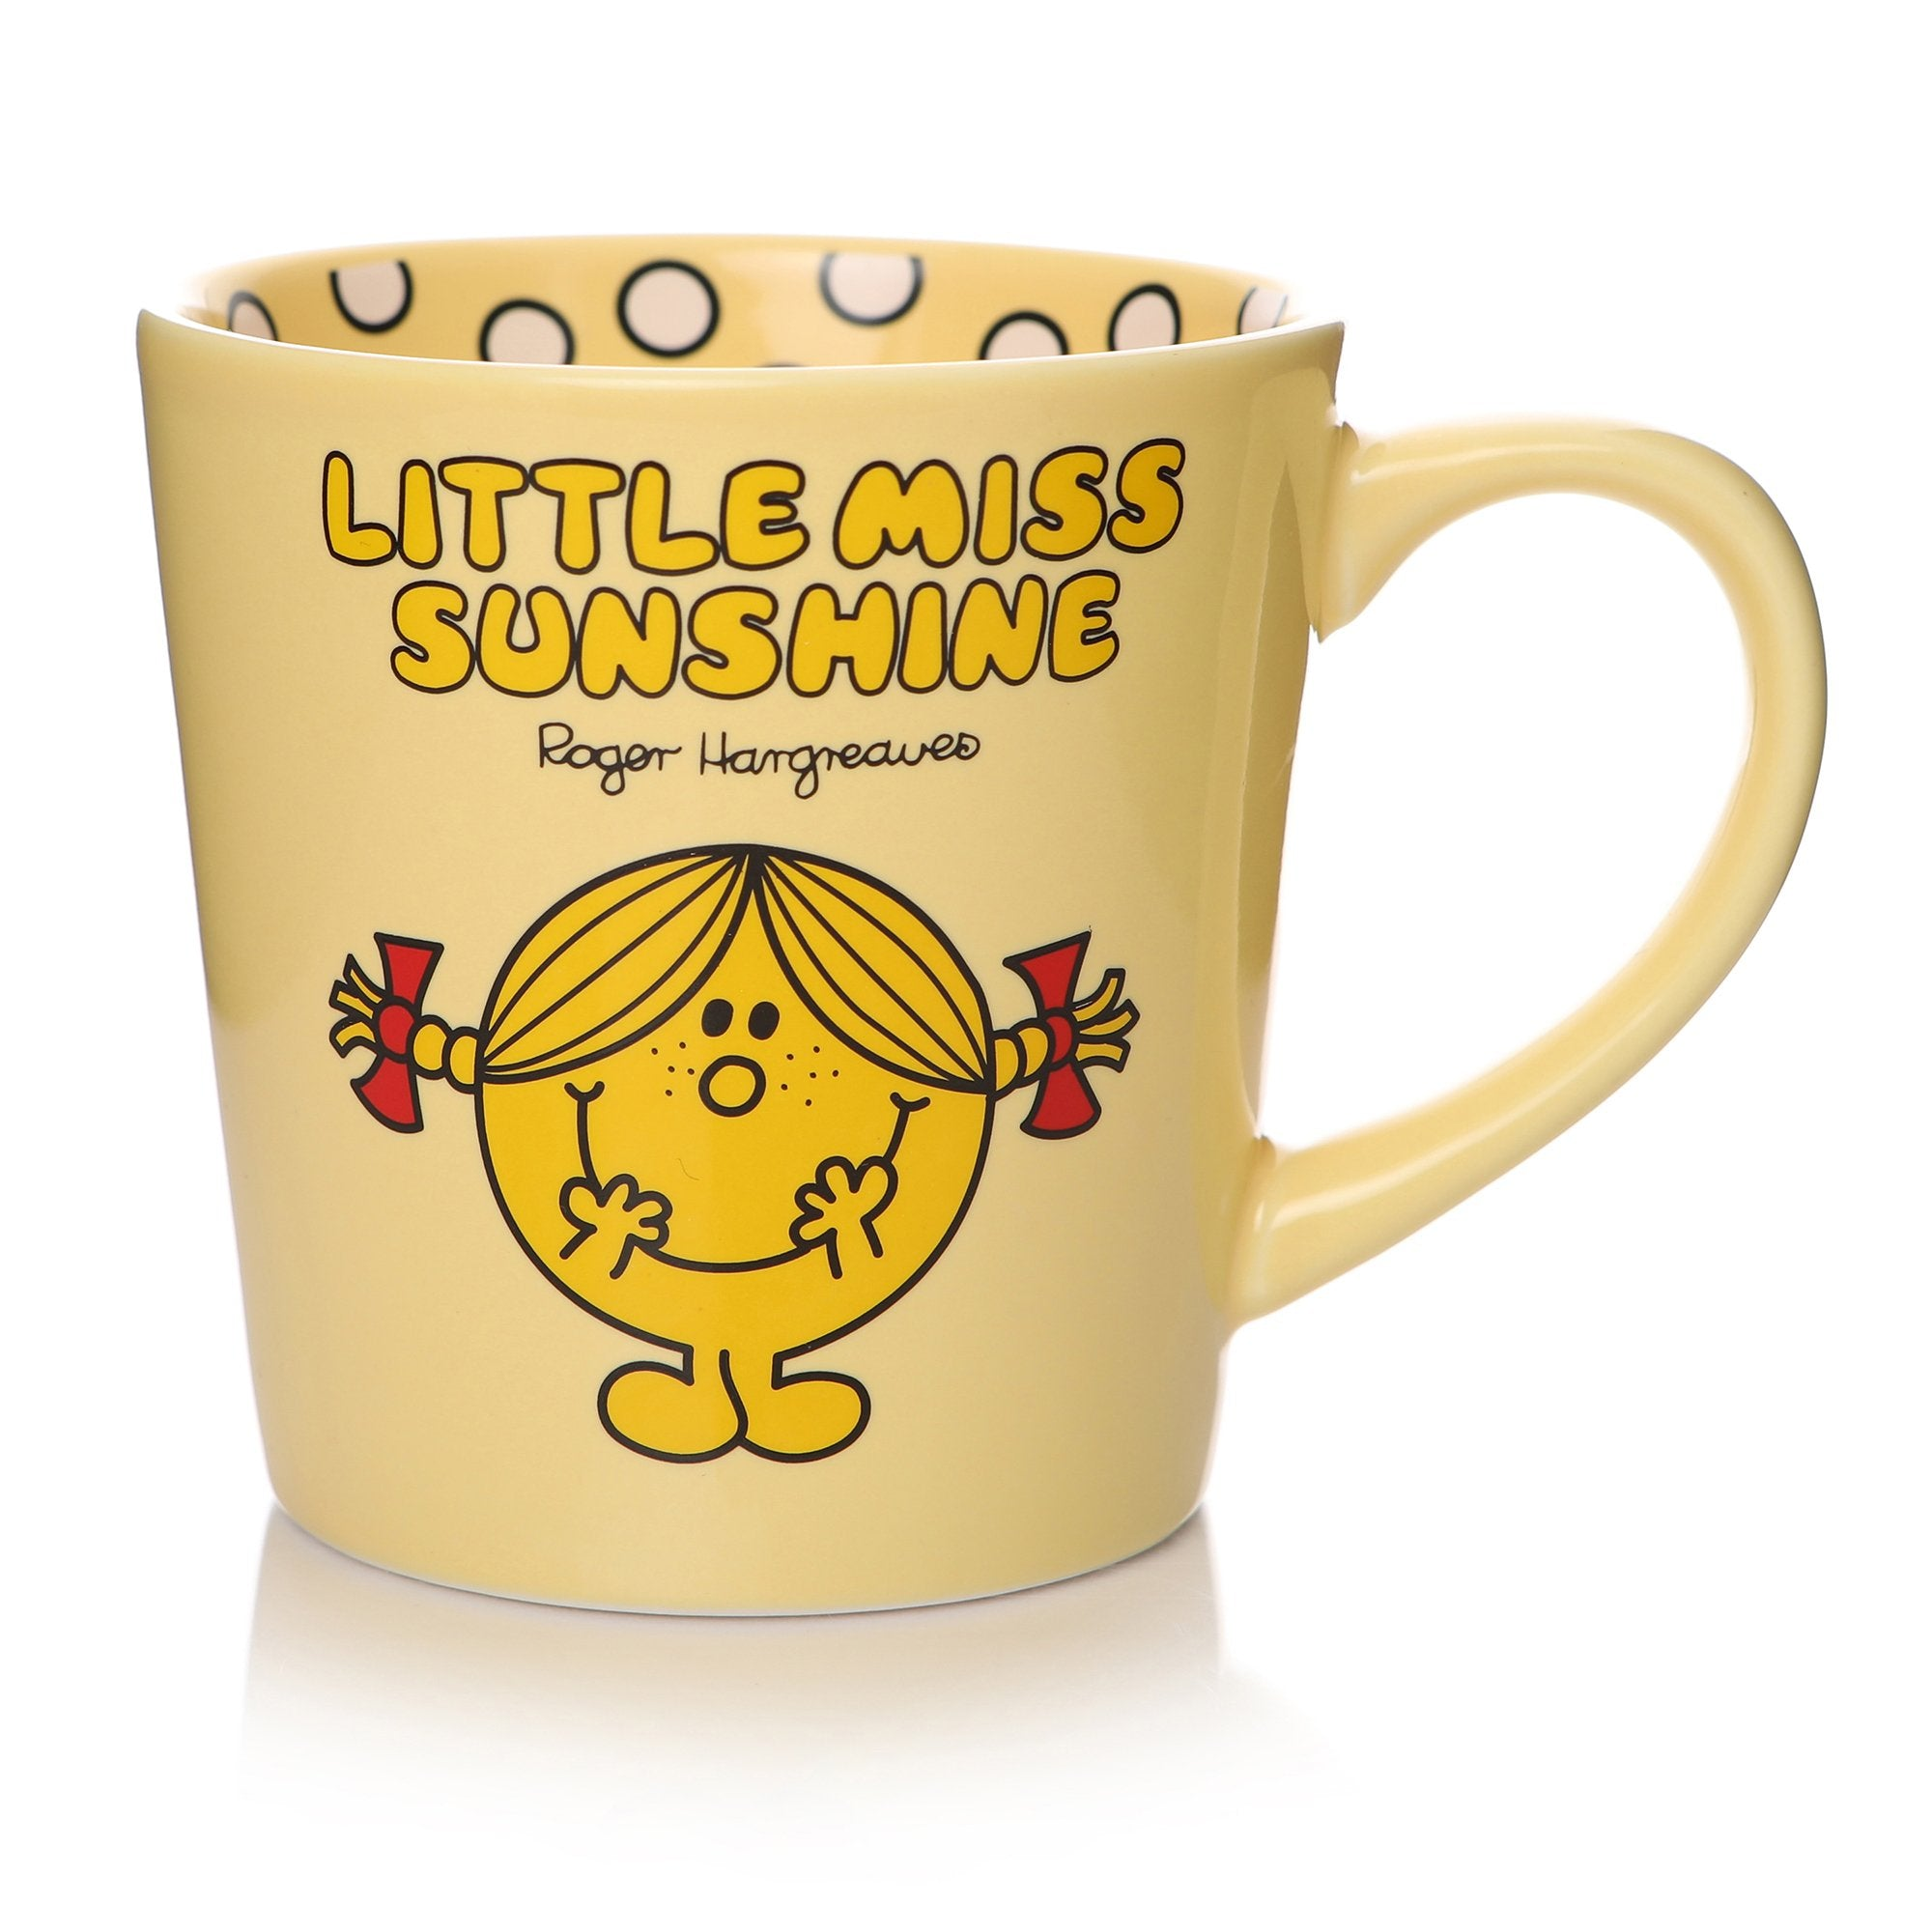 Mr. Men Little Miss Mug - Little Miss Sunshine - Half Moon Bay US